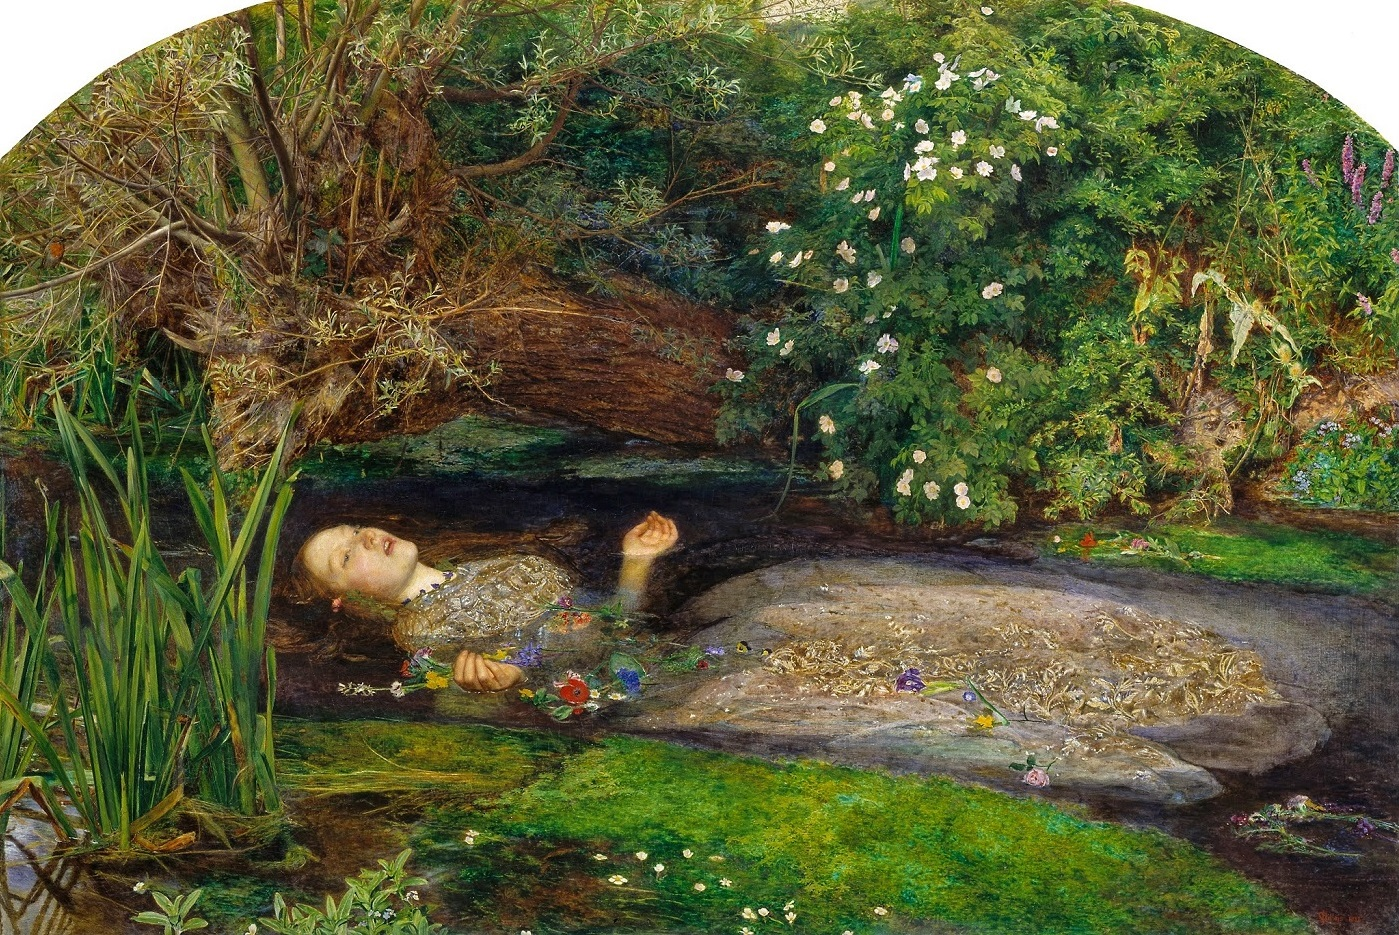 John_Everett_Millais_-_Ophelia_-_Google_Art_Project (1).jpg